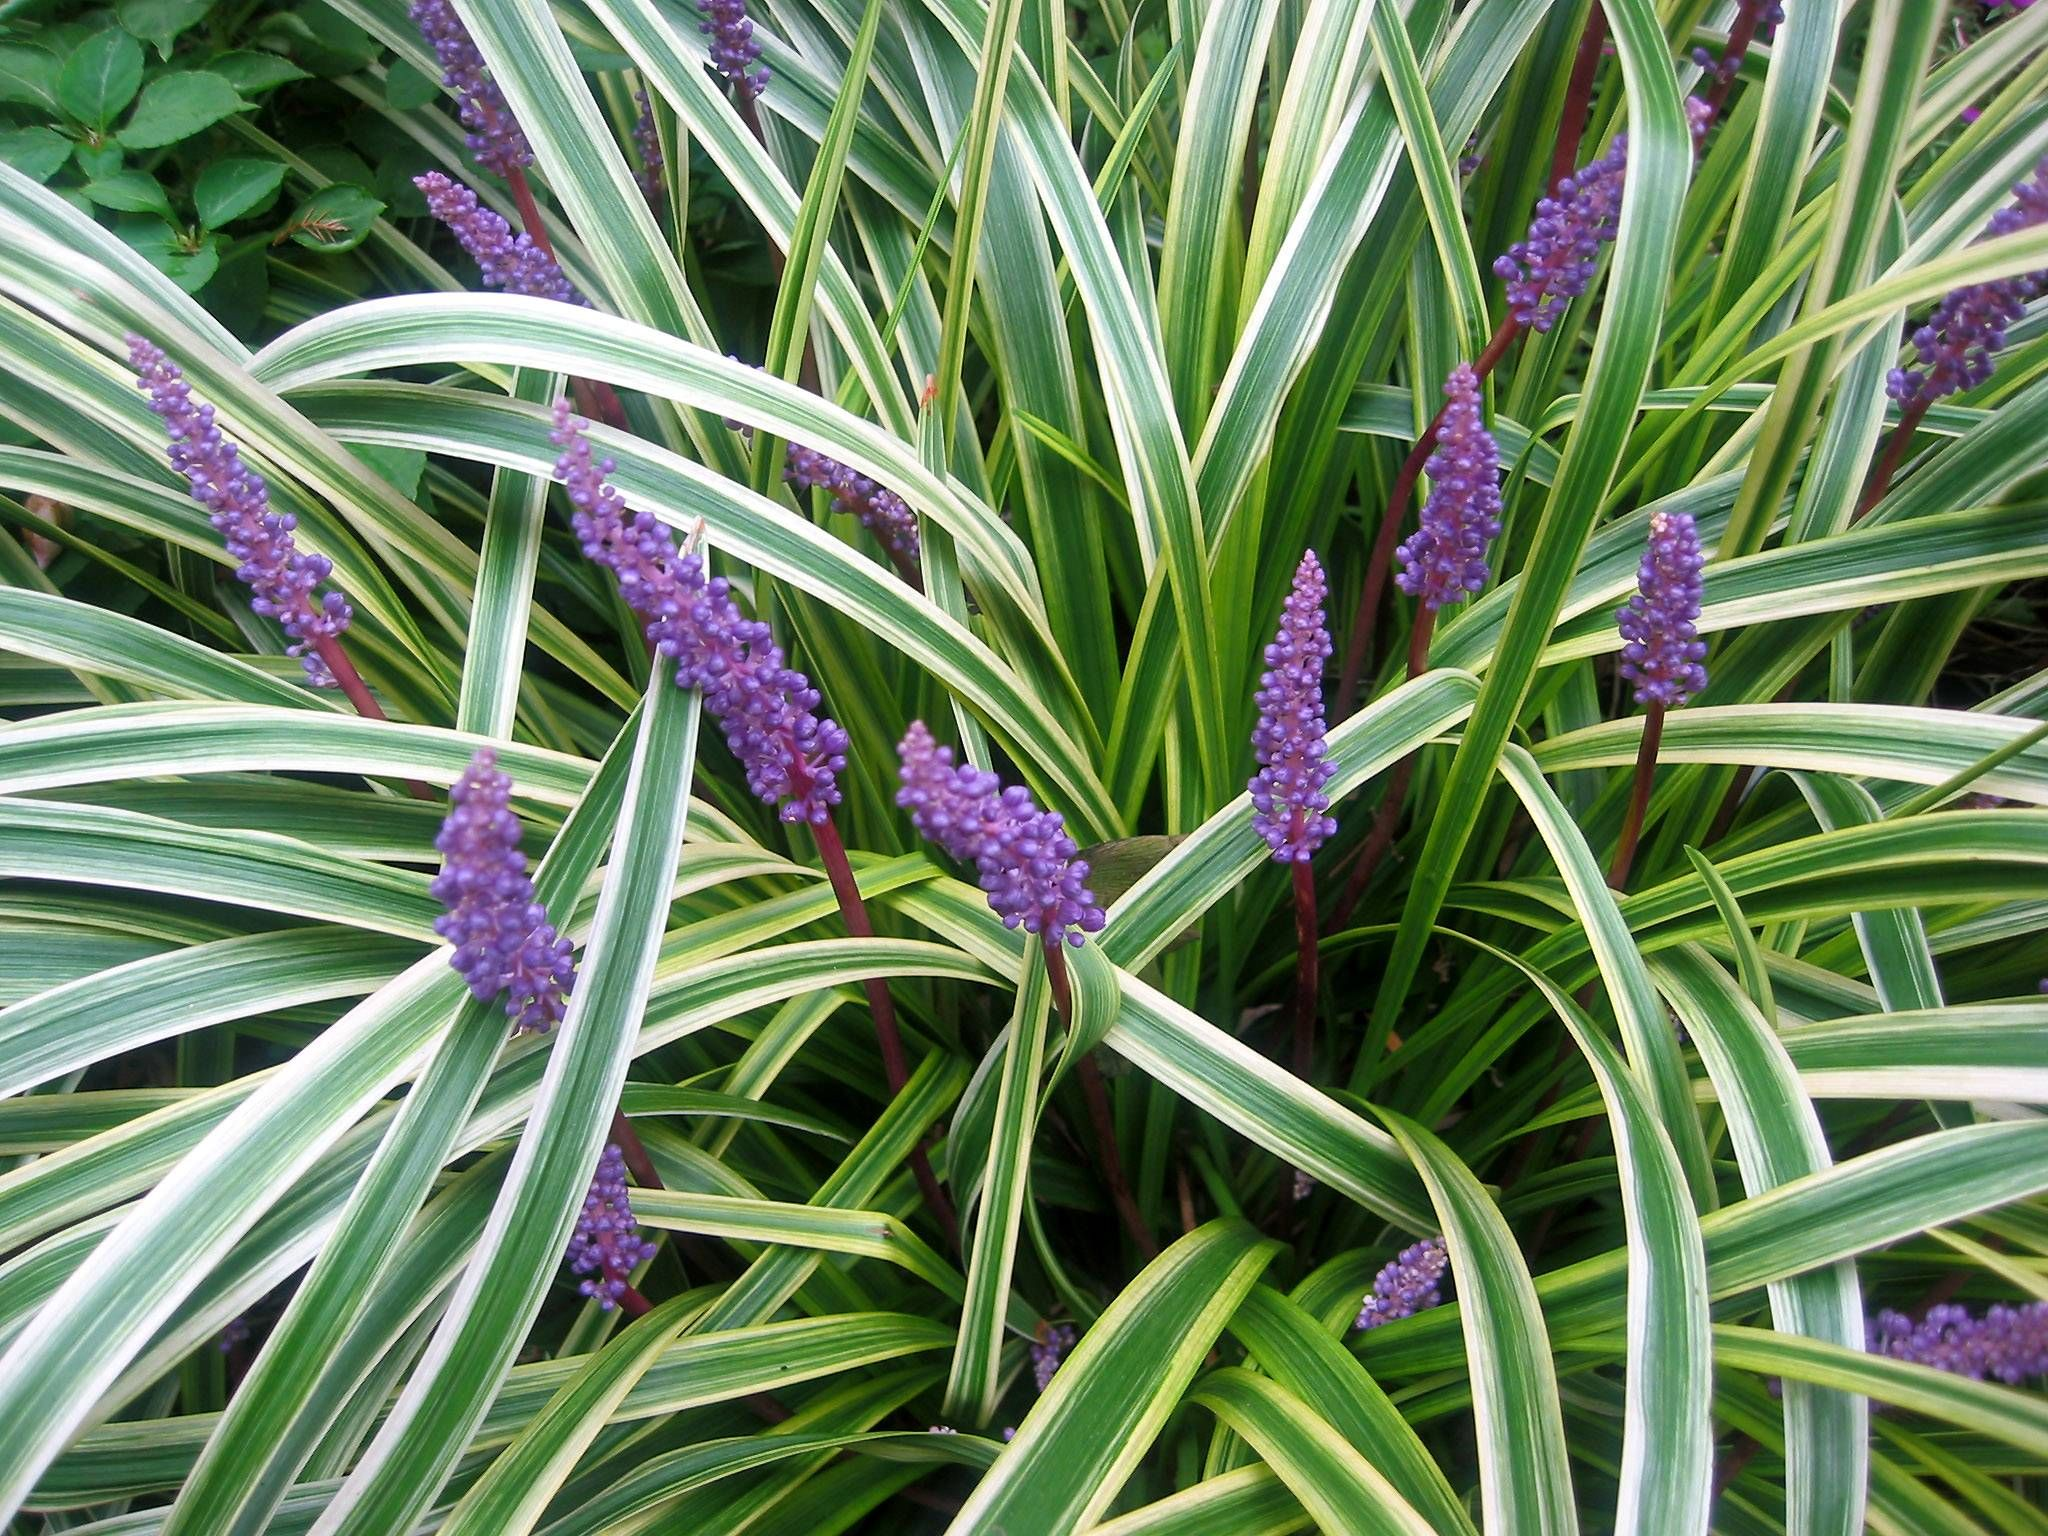 Grass or ground cover liriope plants ground covering for Short variegated grass